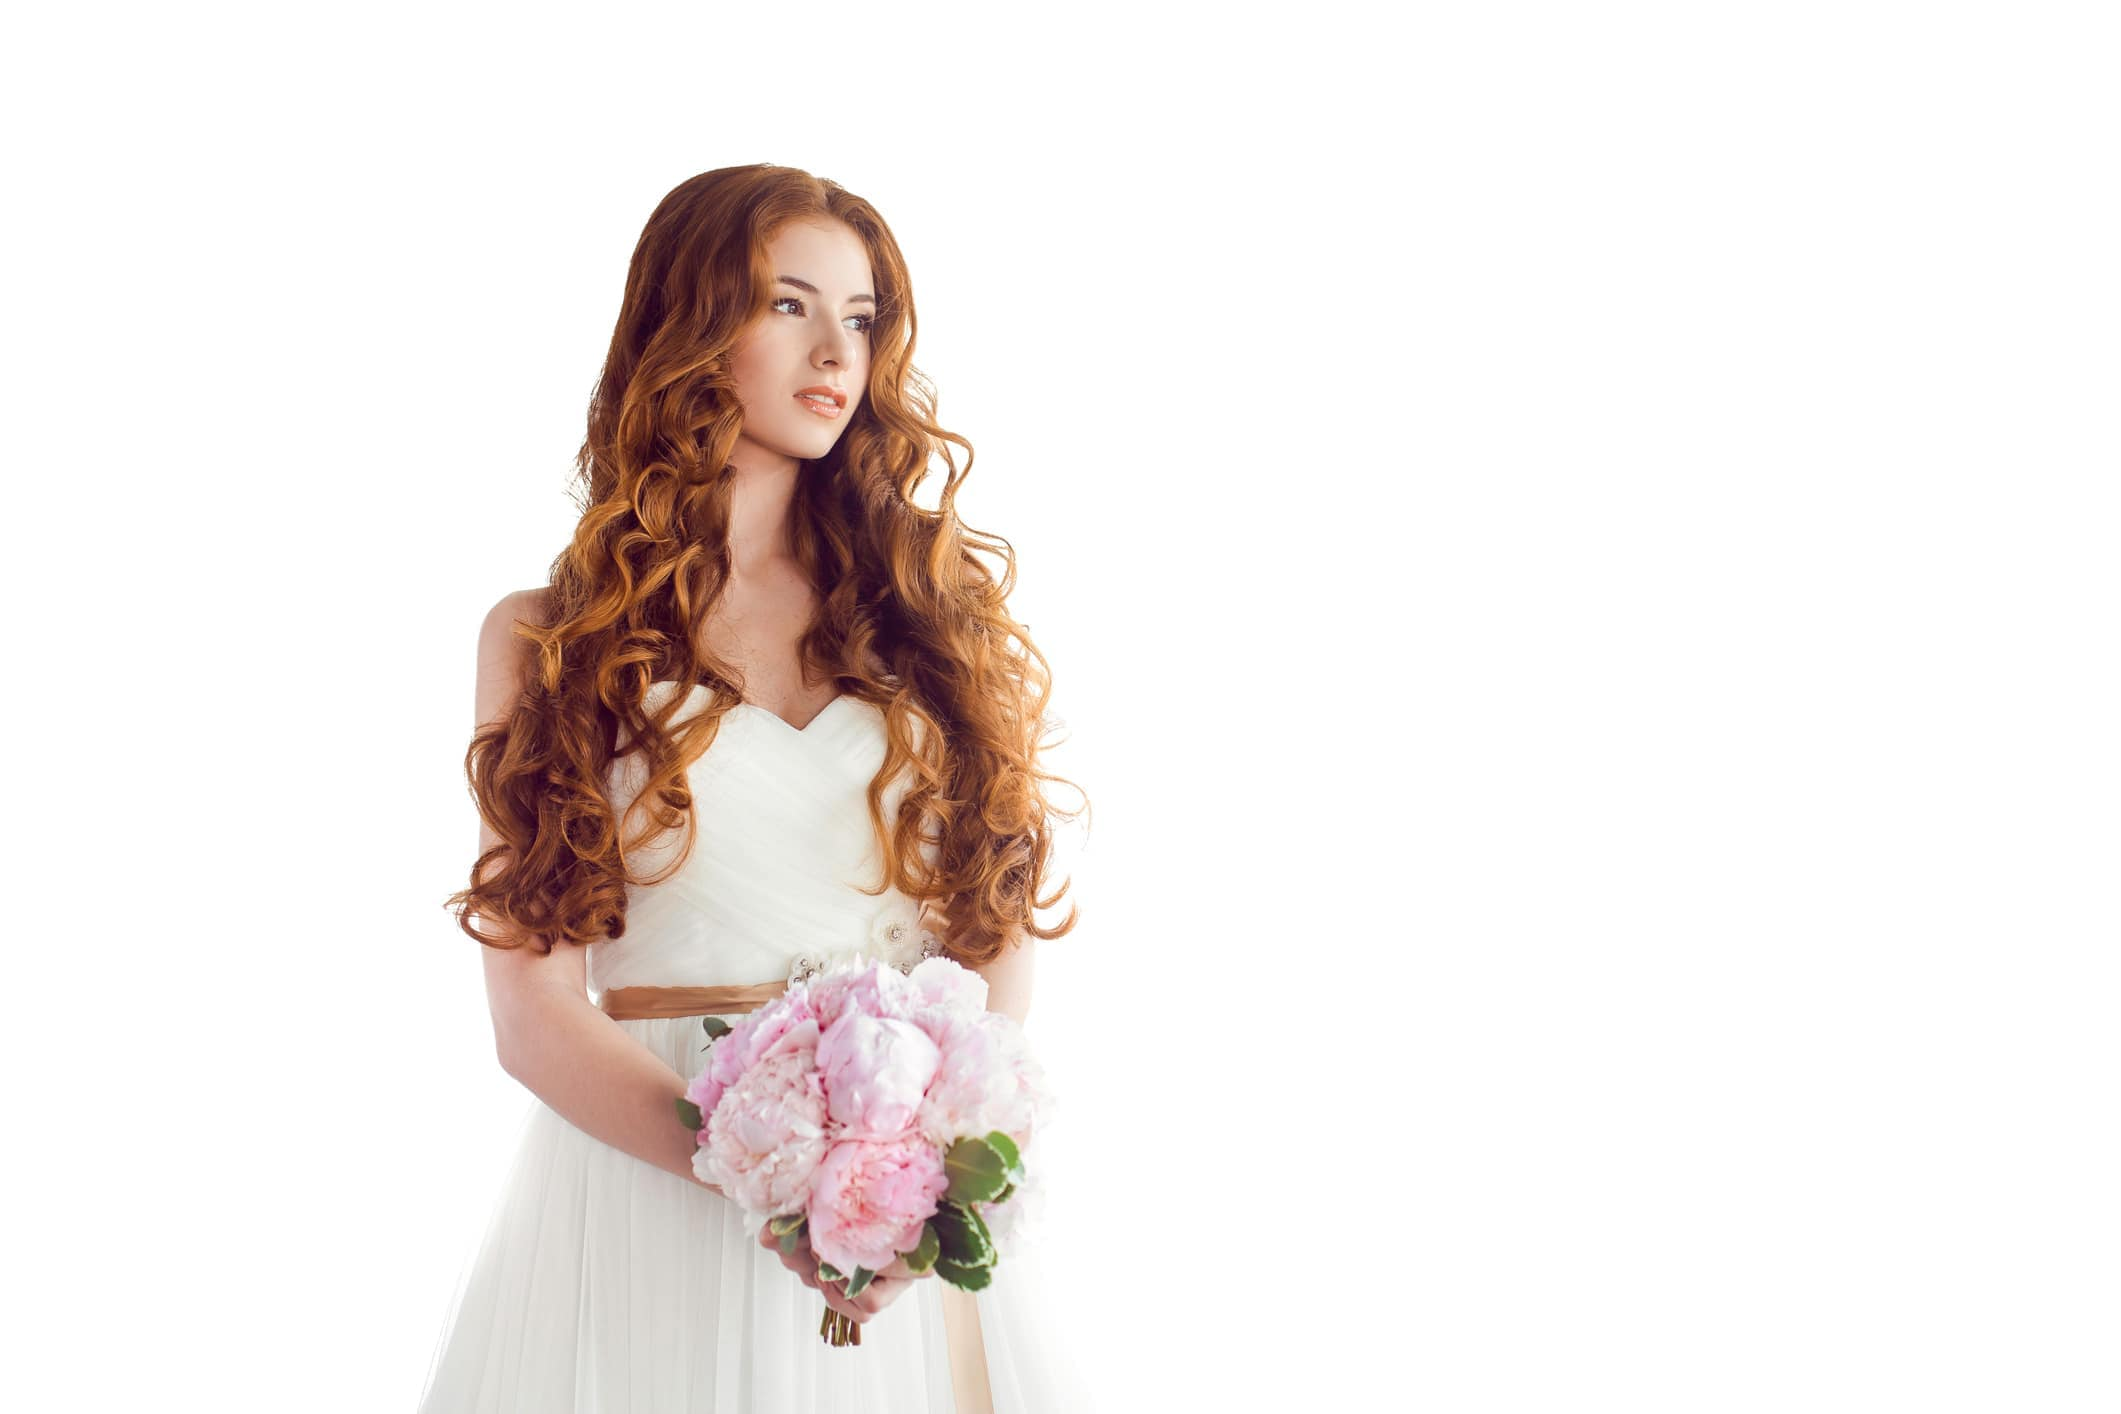 Curly Wedding Hairstyles: 15 Looks for Every Kind of Bride